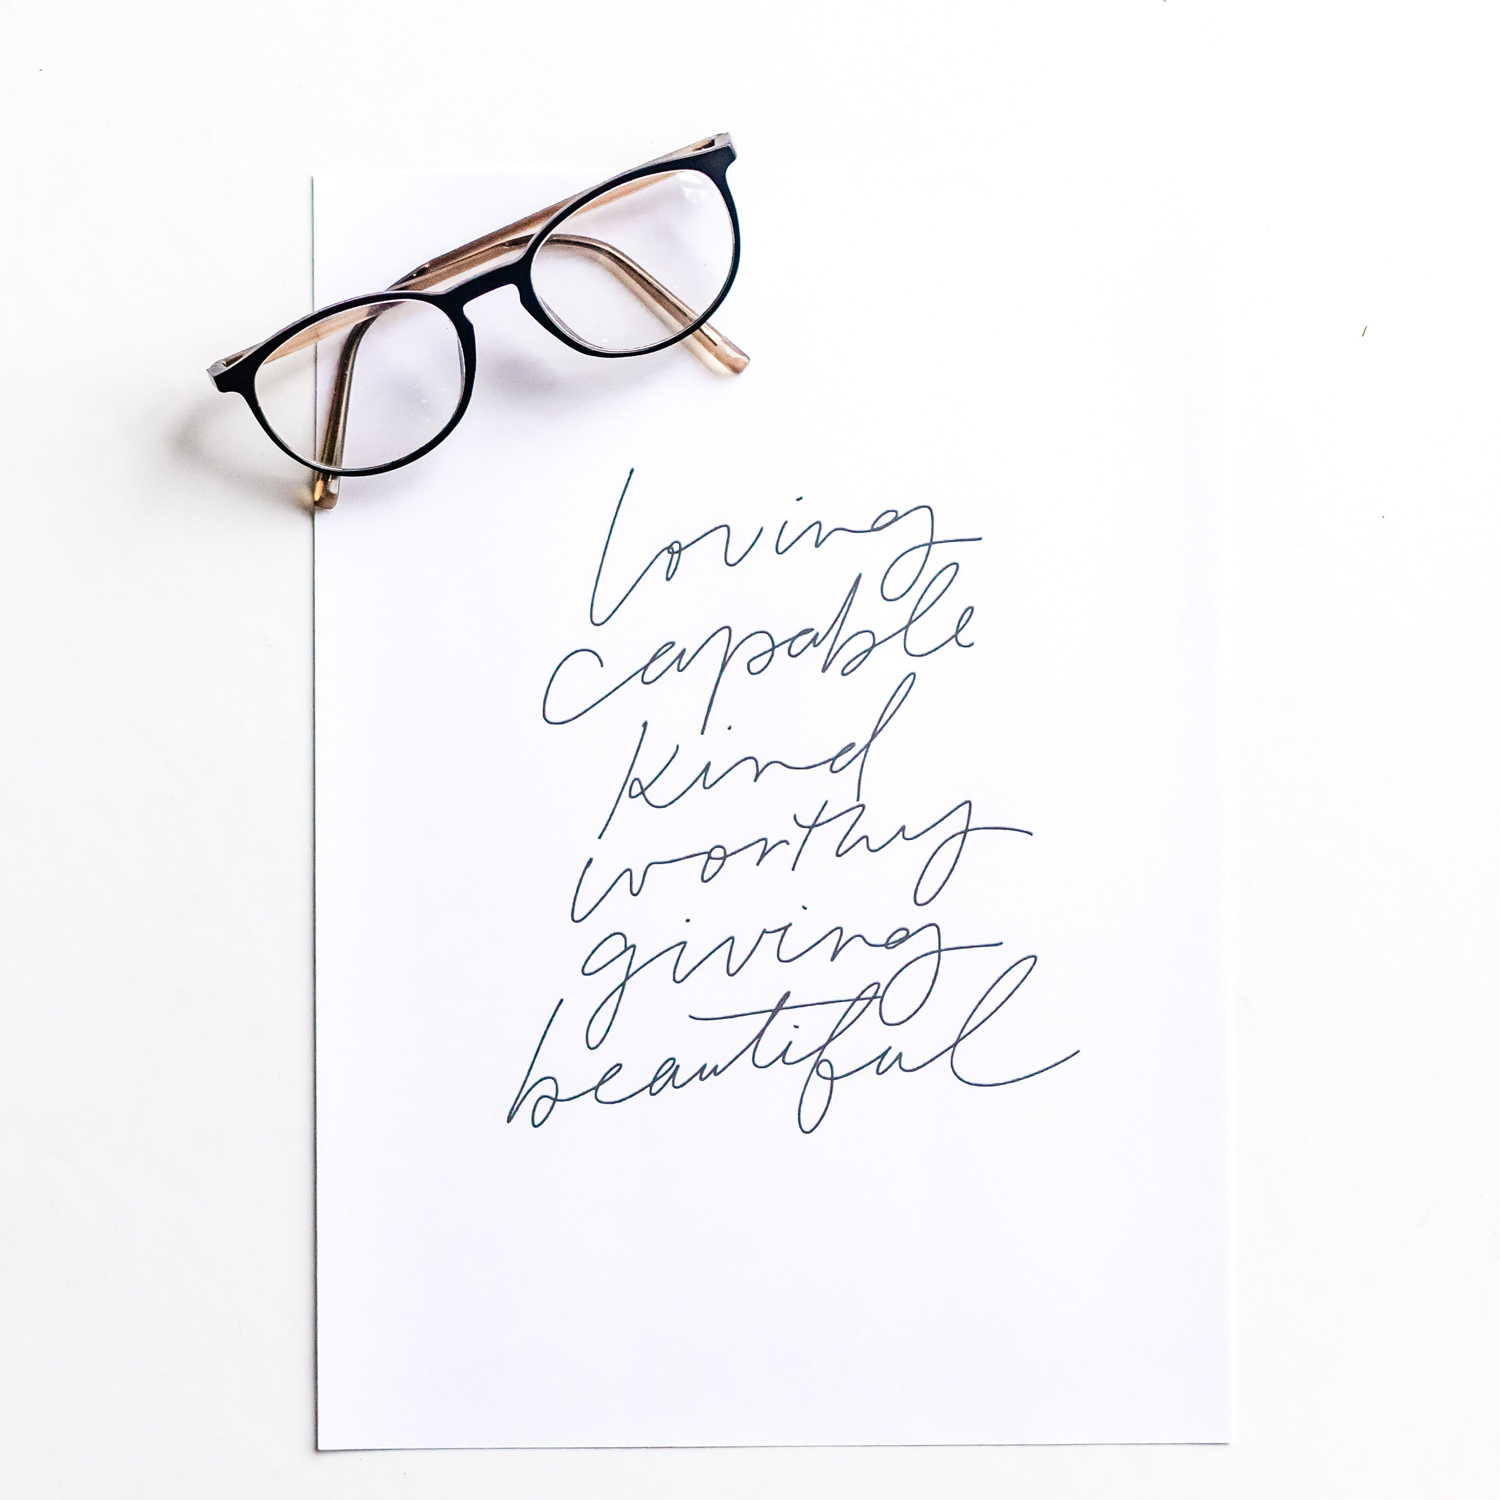 loving capable kind worthy giving beautiful handwriting on paper